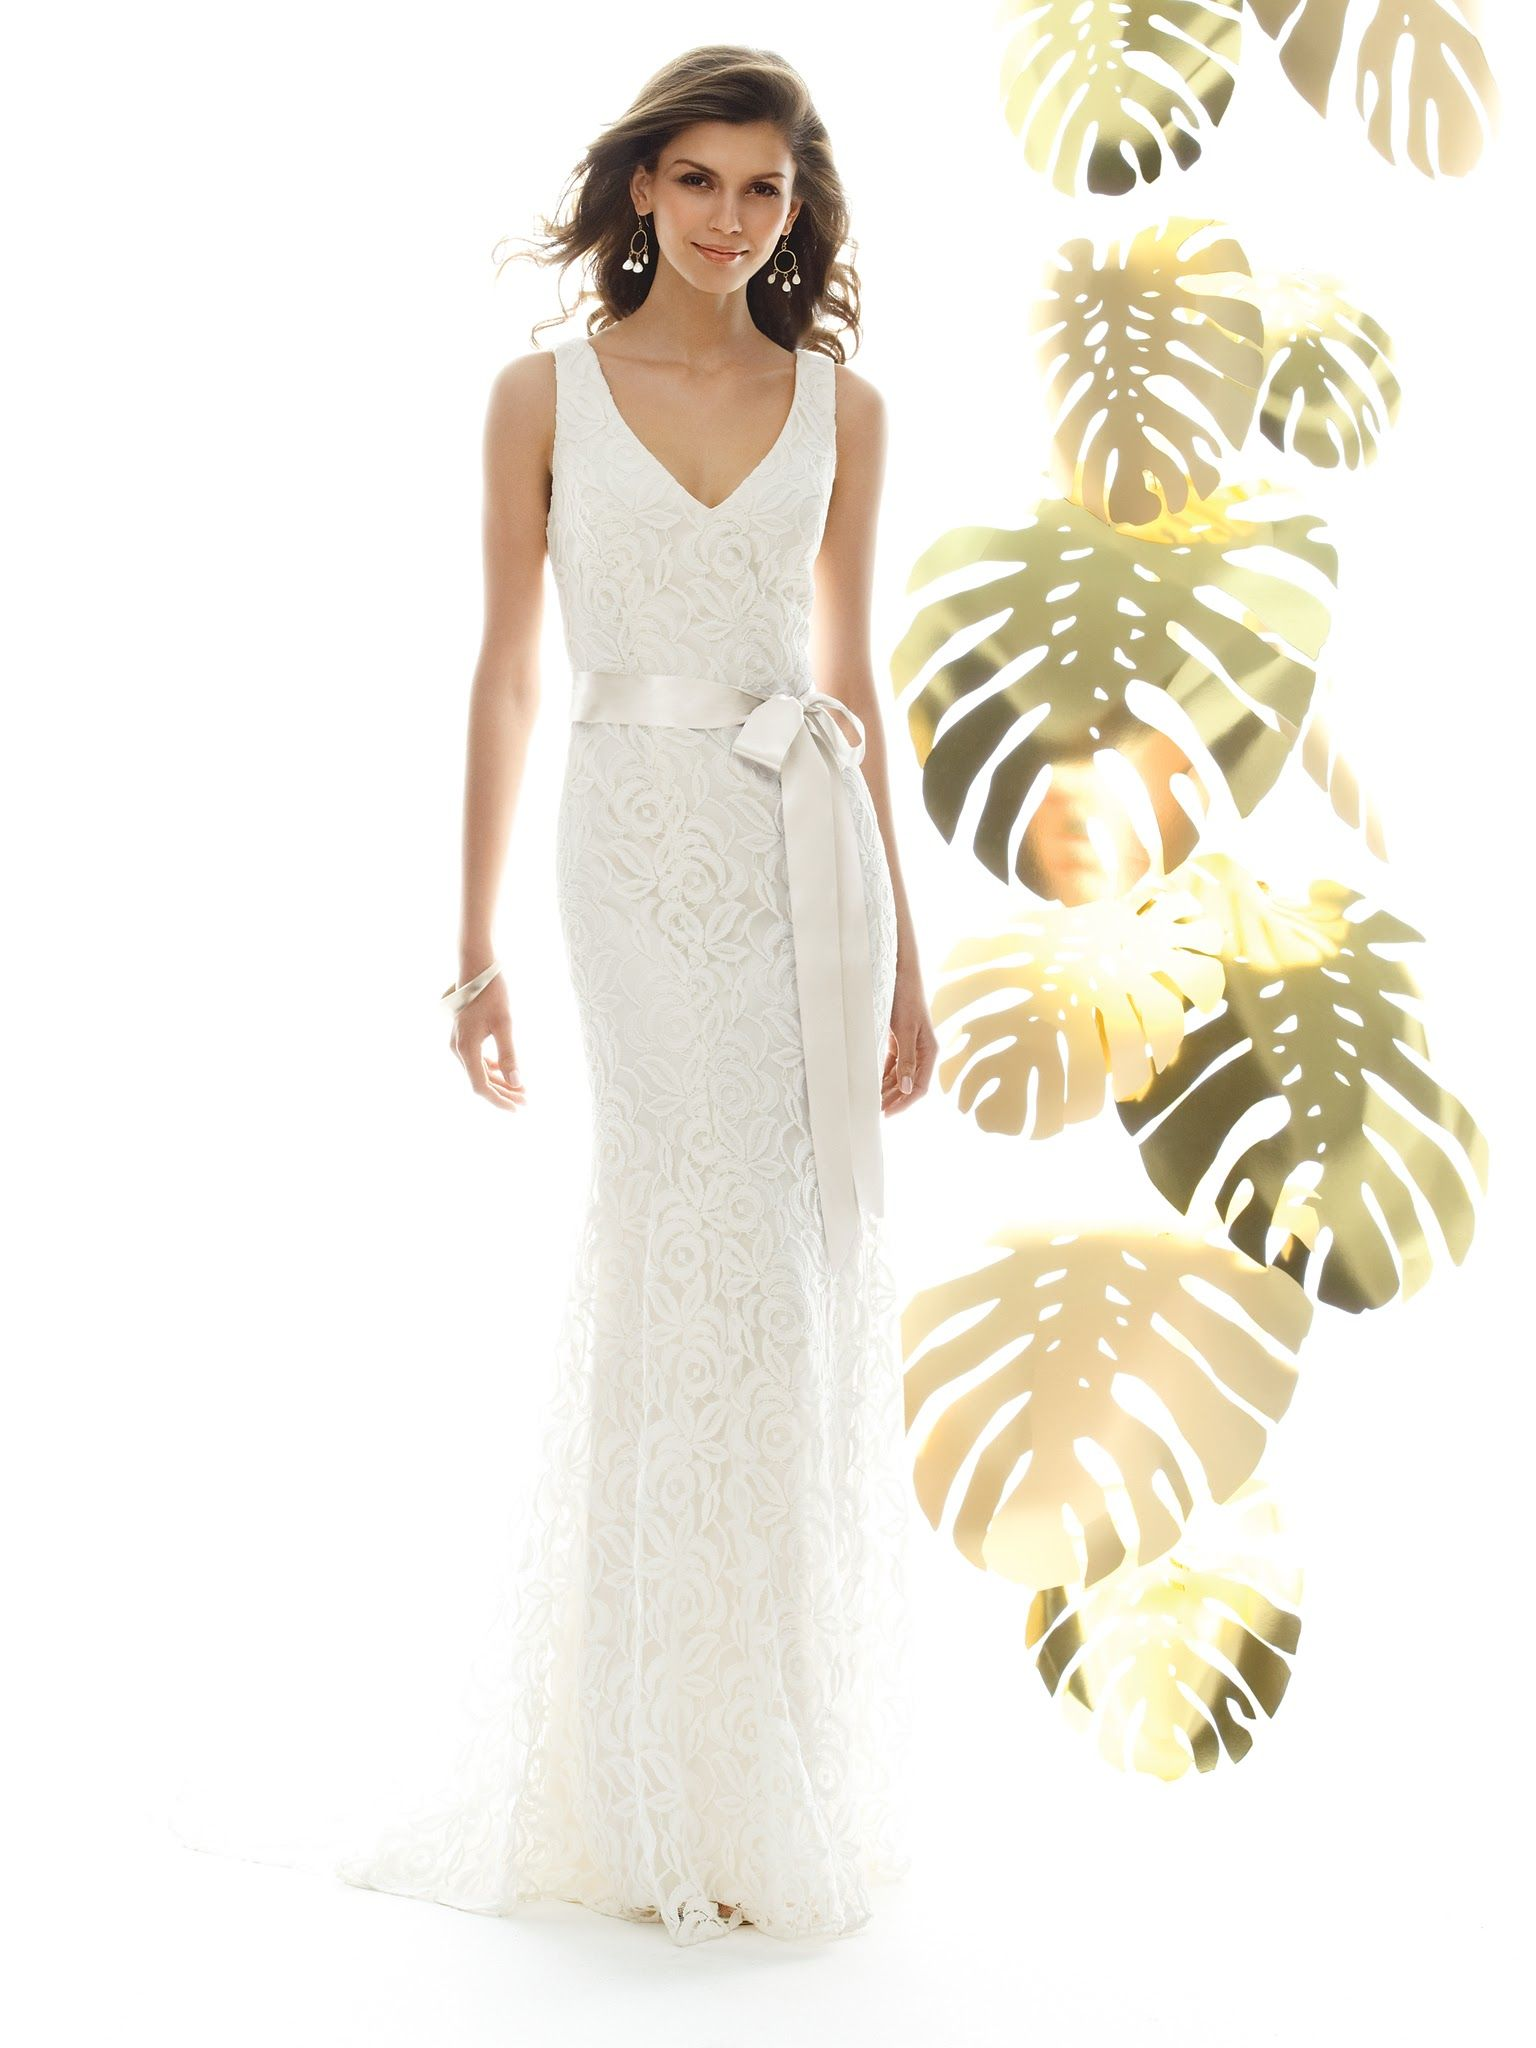 Destination Wedding Dresses | Weddings